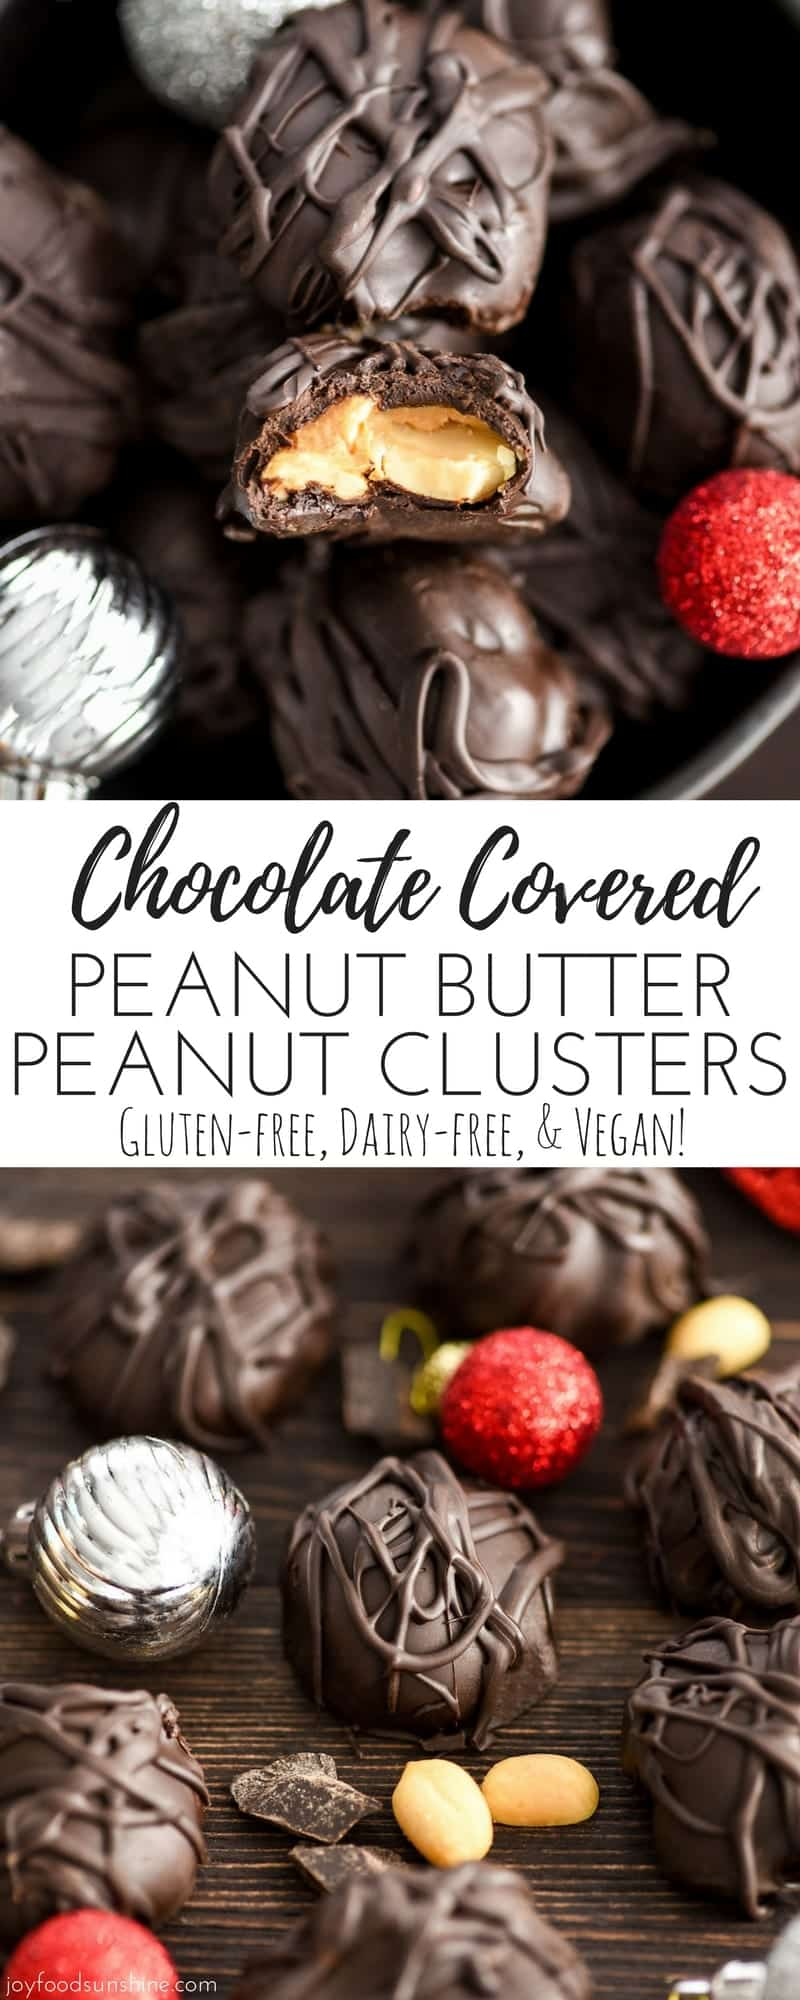 This Chocolate Covered Peanut Butter Peanut Clusters recipe has only 4 ingredients! They're easy to make but taste amazing! A perfect treat to make as a gift for friends and neighbors! #vegan #glutenfree #dairyfree #peanutbutter #christmas #candy